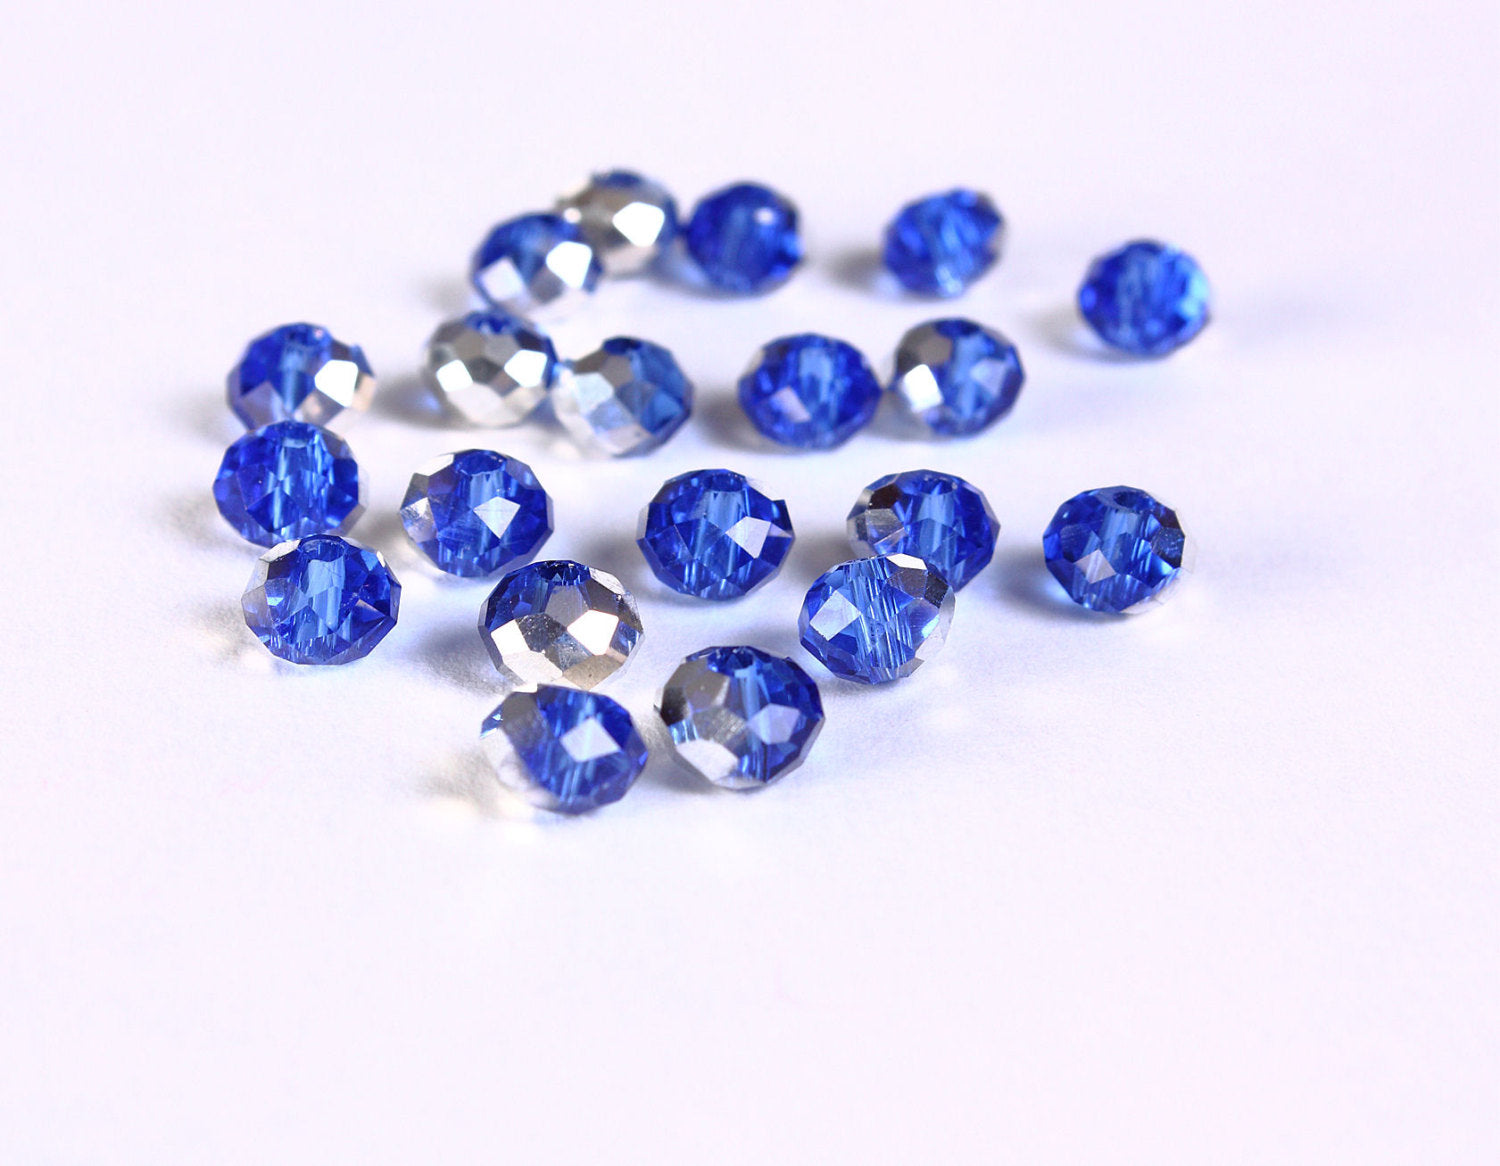 6mm x 4mm blue and mirror silver glass bead - 20 pieces (1415)